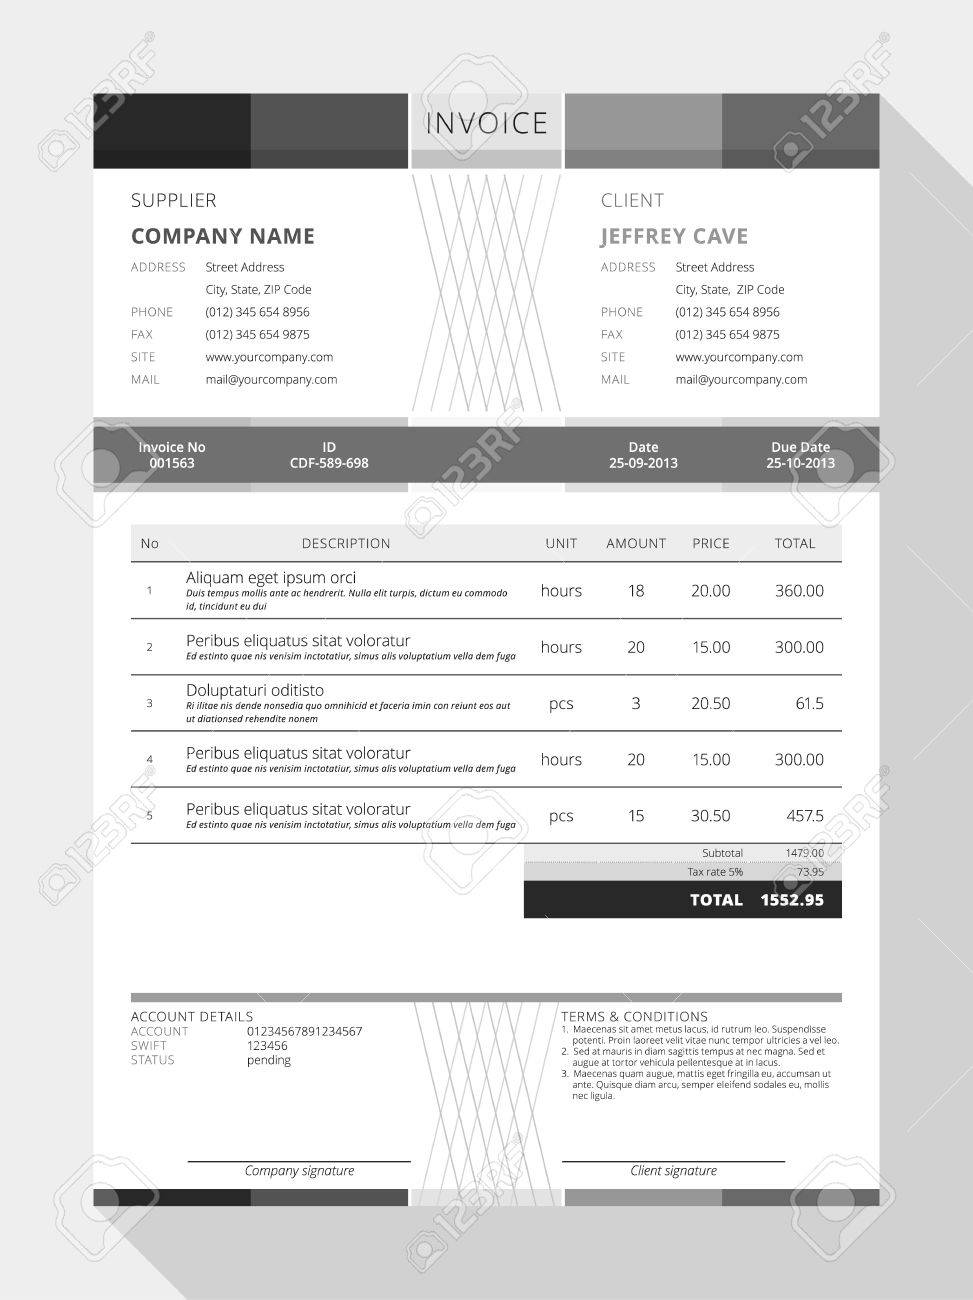 Picnictoimpeachus  Outstanding Design An Invoice  Professional Graphic Design Invoice  With Handsome Vector Customizable Invoice Form Template Design Vector   Design An Invoice With Awesome How Do You Send A Paypal Invoice Also Illustration Invoice In Addition Invoice Data Capture And Business Invoices Online As Well As What Are Invoices Used For Additionally Invoice Printers From Happytomco With Picnictoimpeachus  Handsome Design An Invoice  Professional Graphic Design Invoice  With Awesome Vector Customizable Invoice Form Template Design Vector   Design An Invoice And Outstanding How Do You Send A Paypal Invoice Also Illustration Invoice In Addition Invoice Data Capture From Happytomco